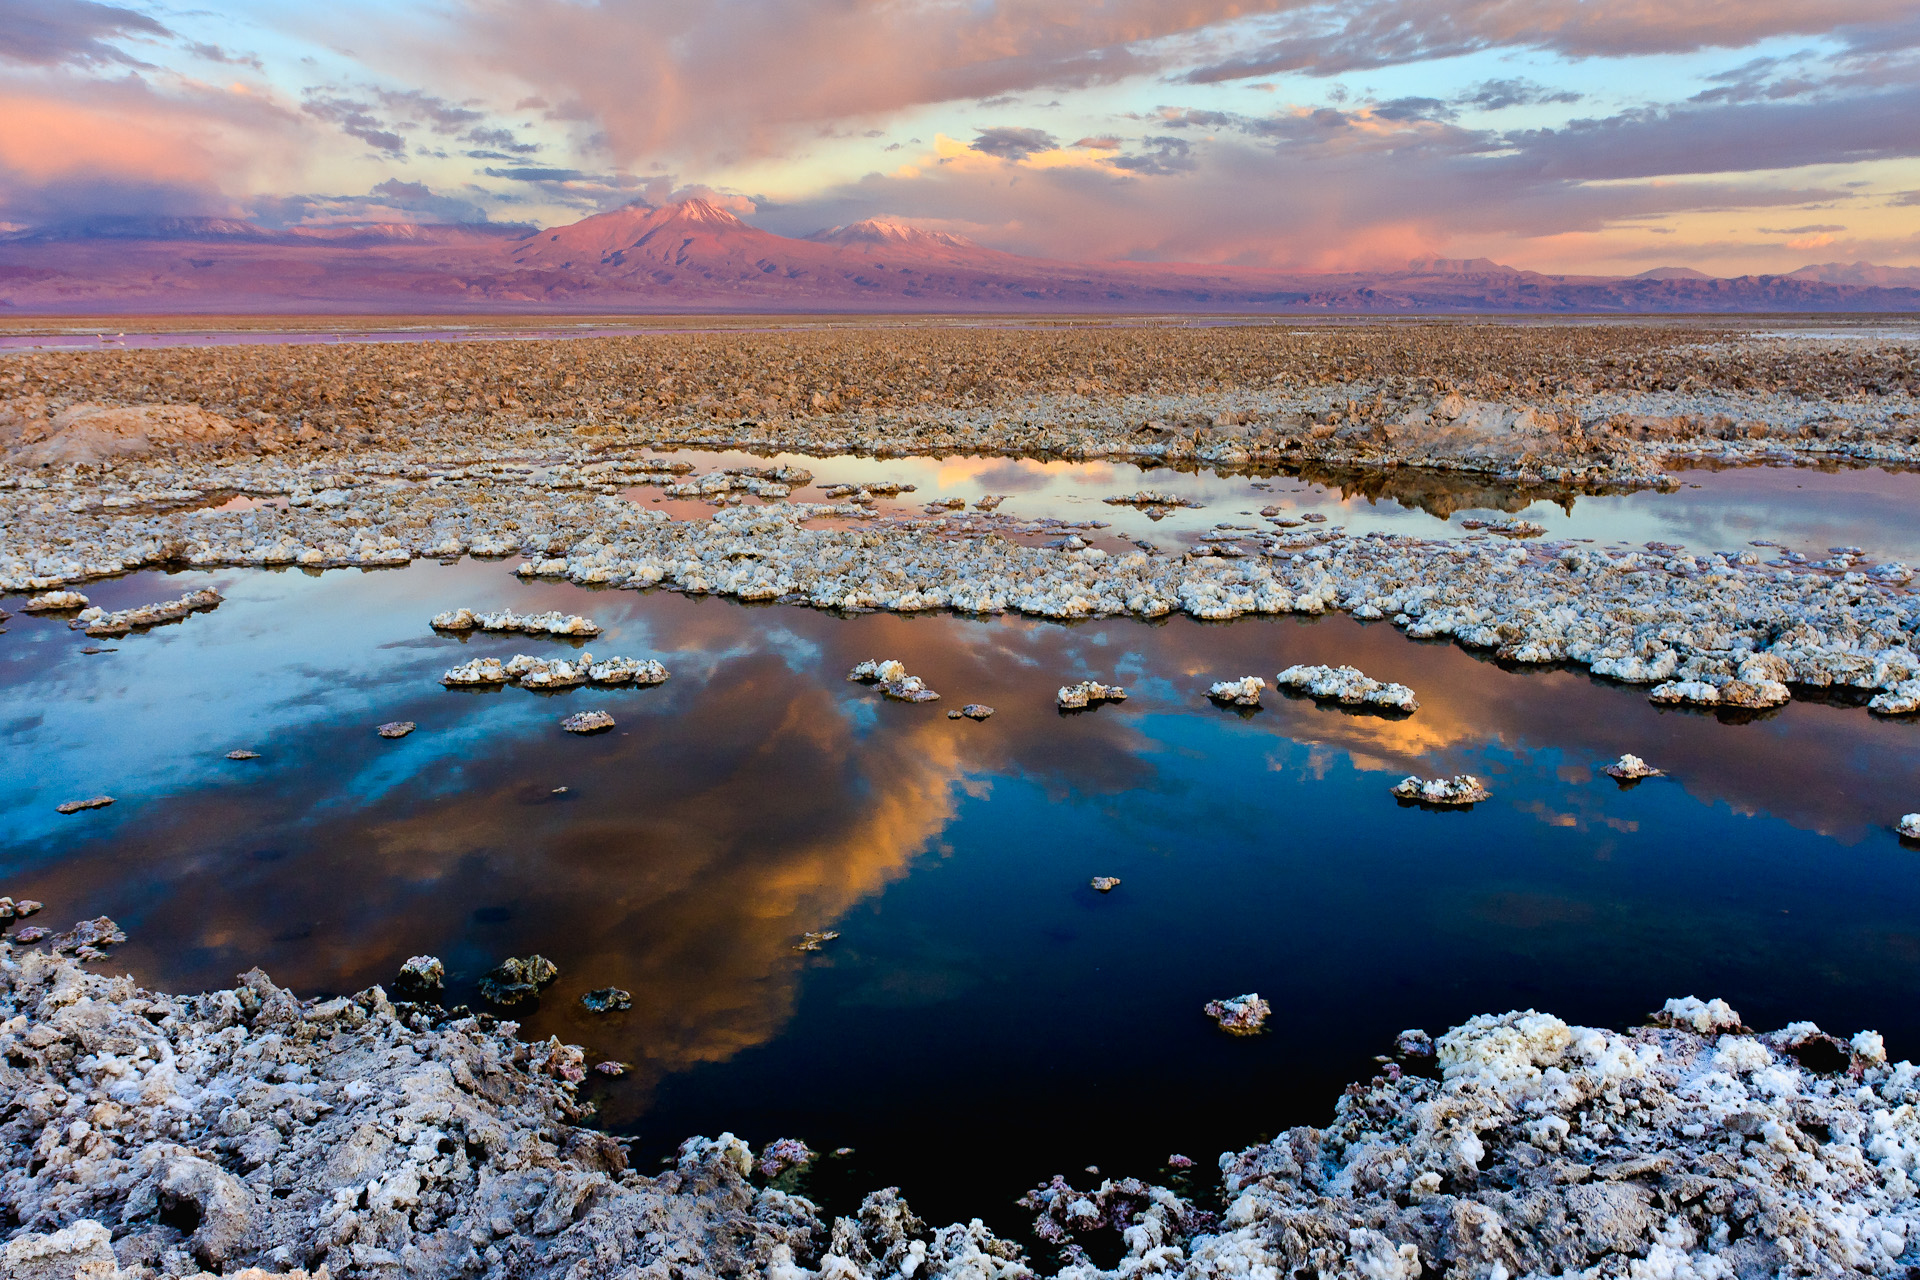 What do Floods in Chile Mean for Lithium Supply?